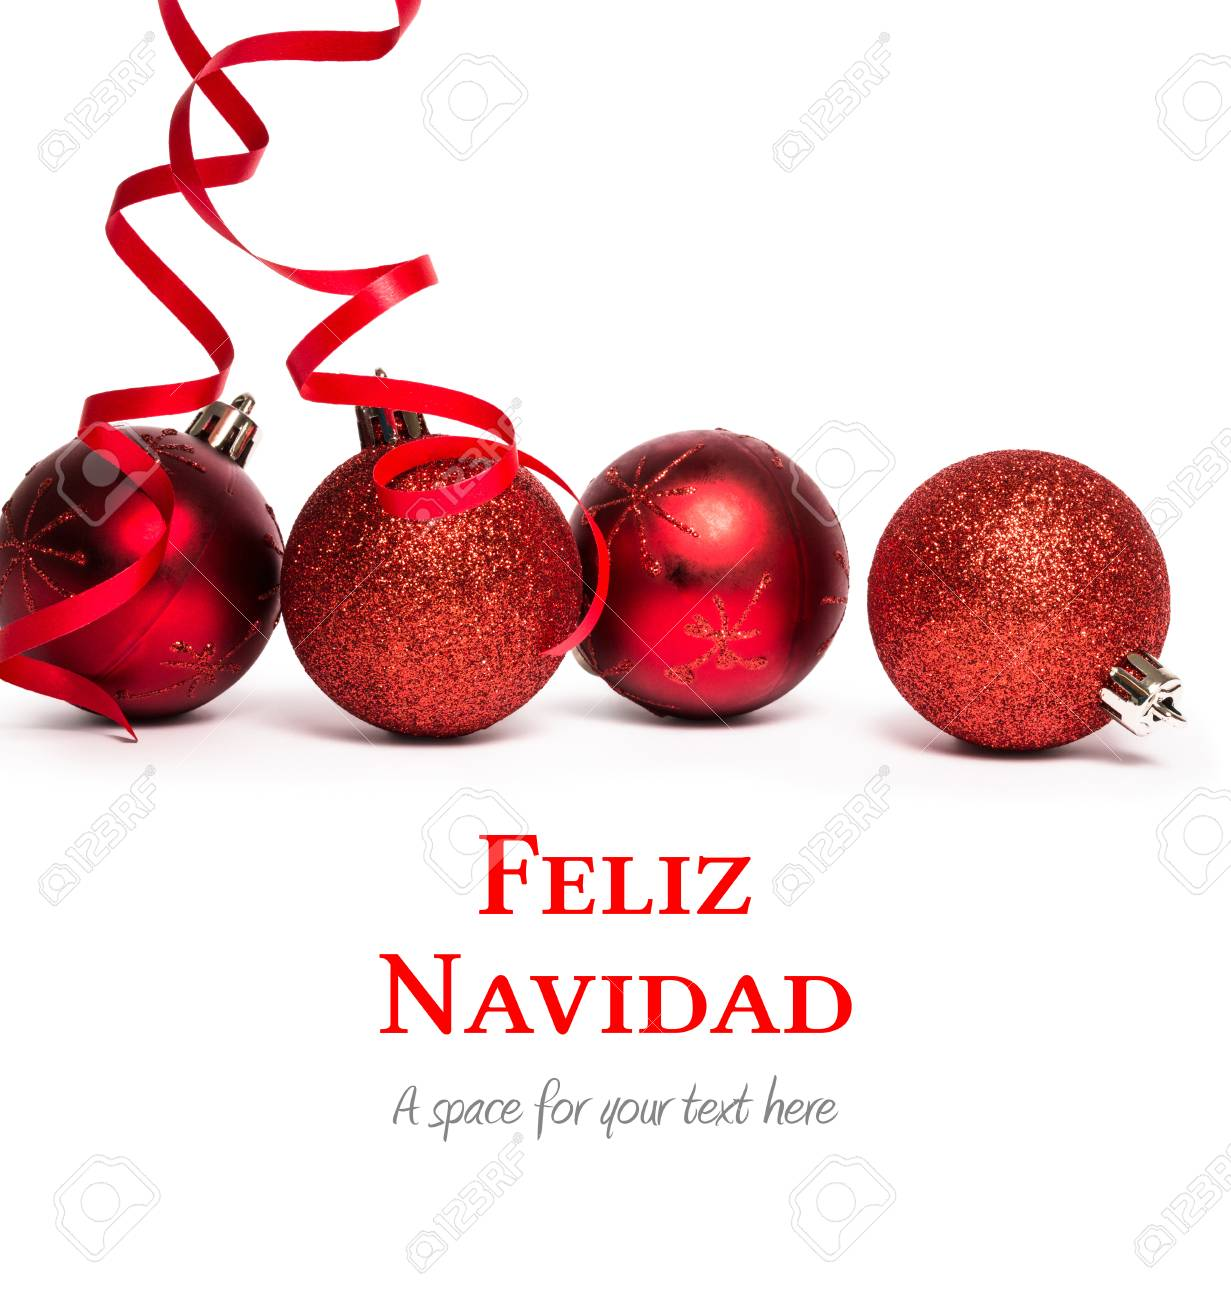 feliz navidad against four red christmas ball decorations stock photo 42607208